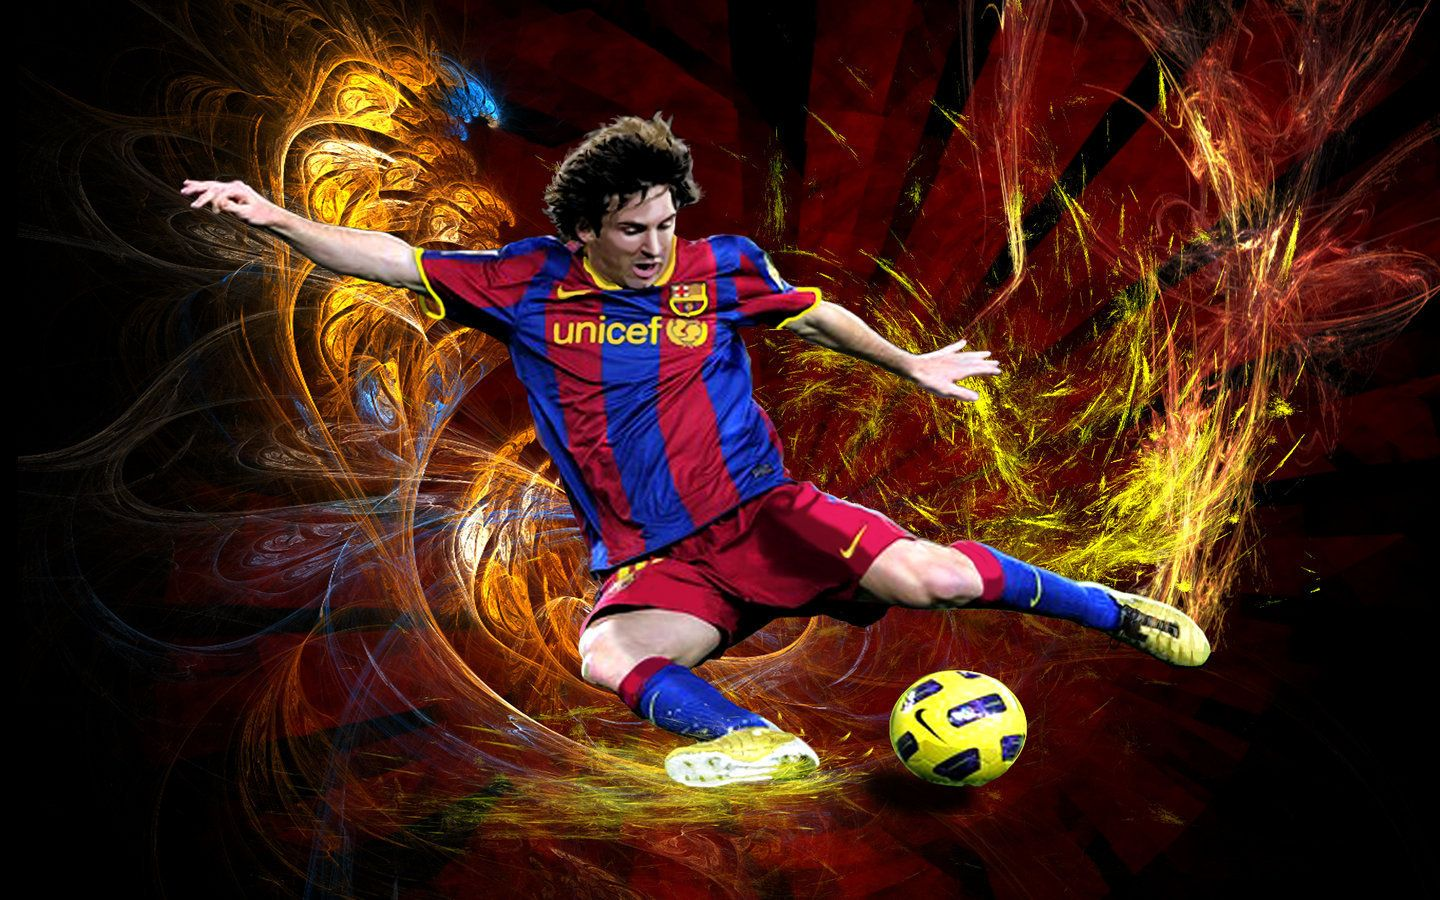 Lionel messi fc barcelona wallpaper action shot httpwww lionel messi fc barcelona wallpaper action shot httpwallpapersoccer voltagebd Image collections